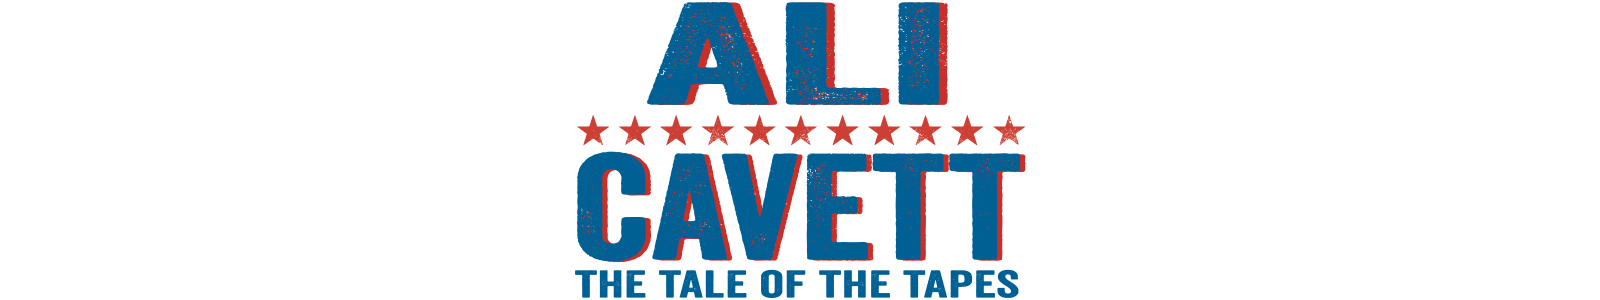 ali and cavett the tale of the tapes